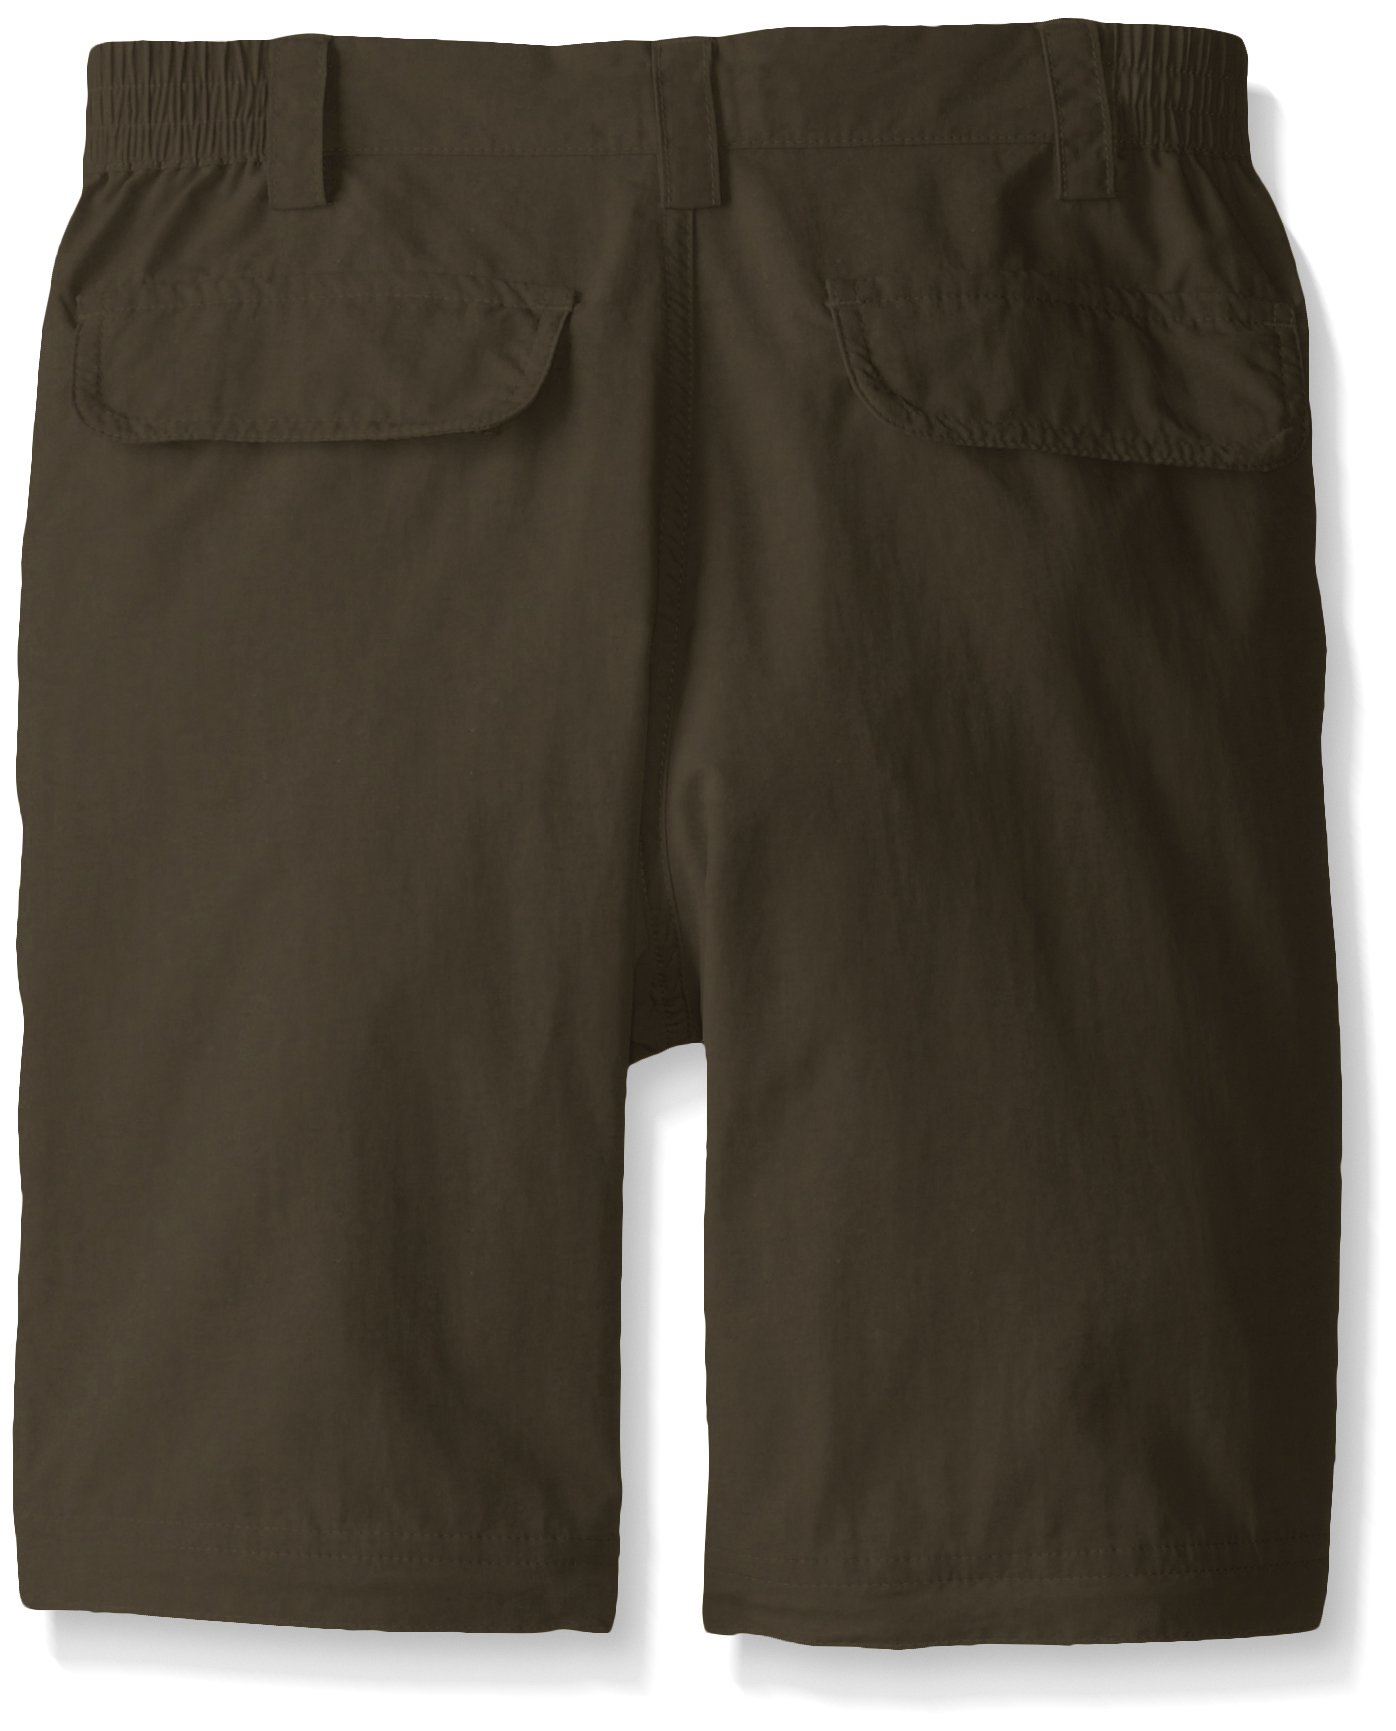 White Sierra Youth Trail Convertible Pants, Dark Sage, Large by White Sierra (Image #2)